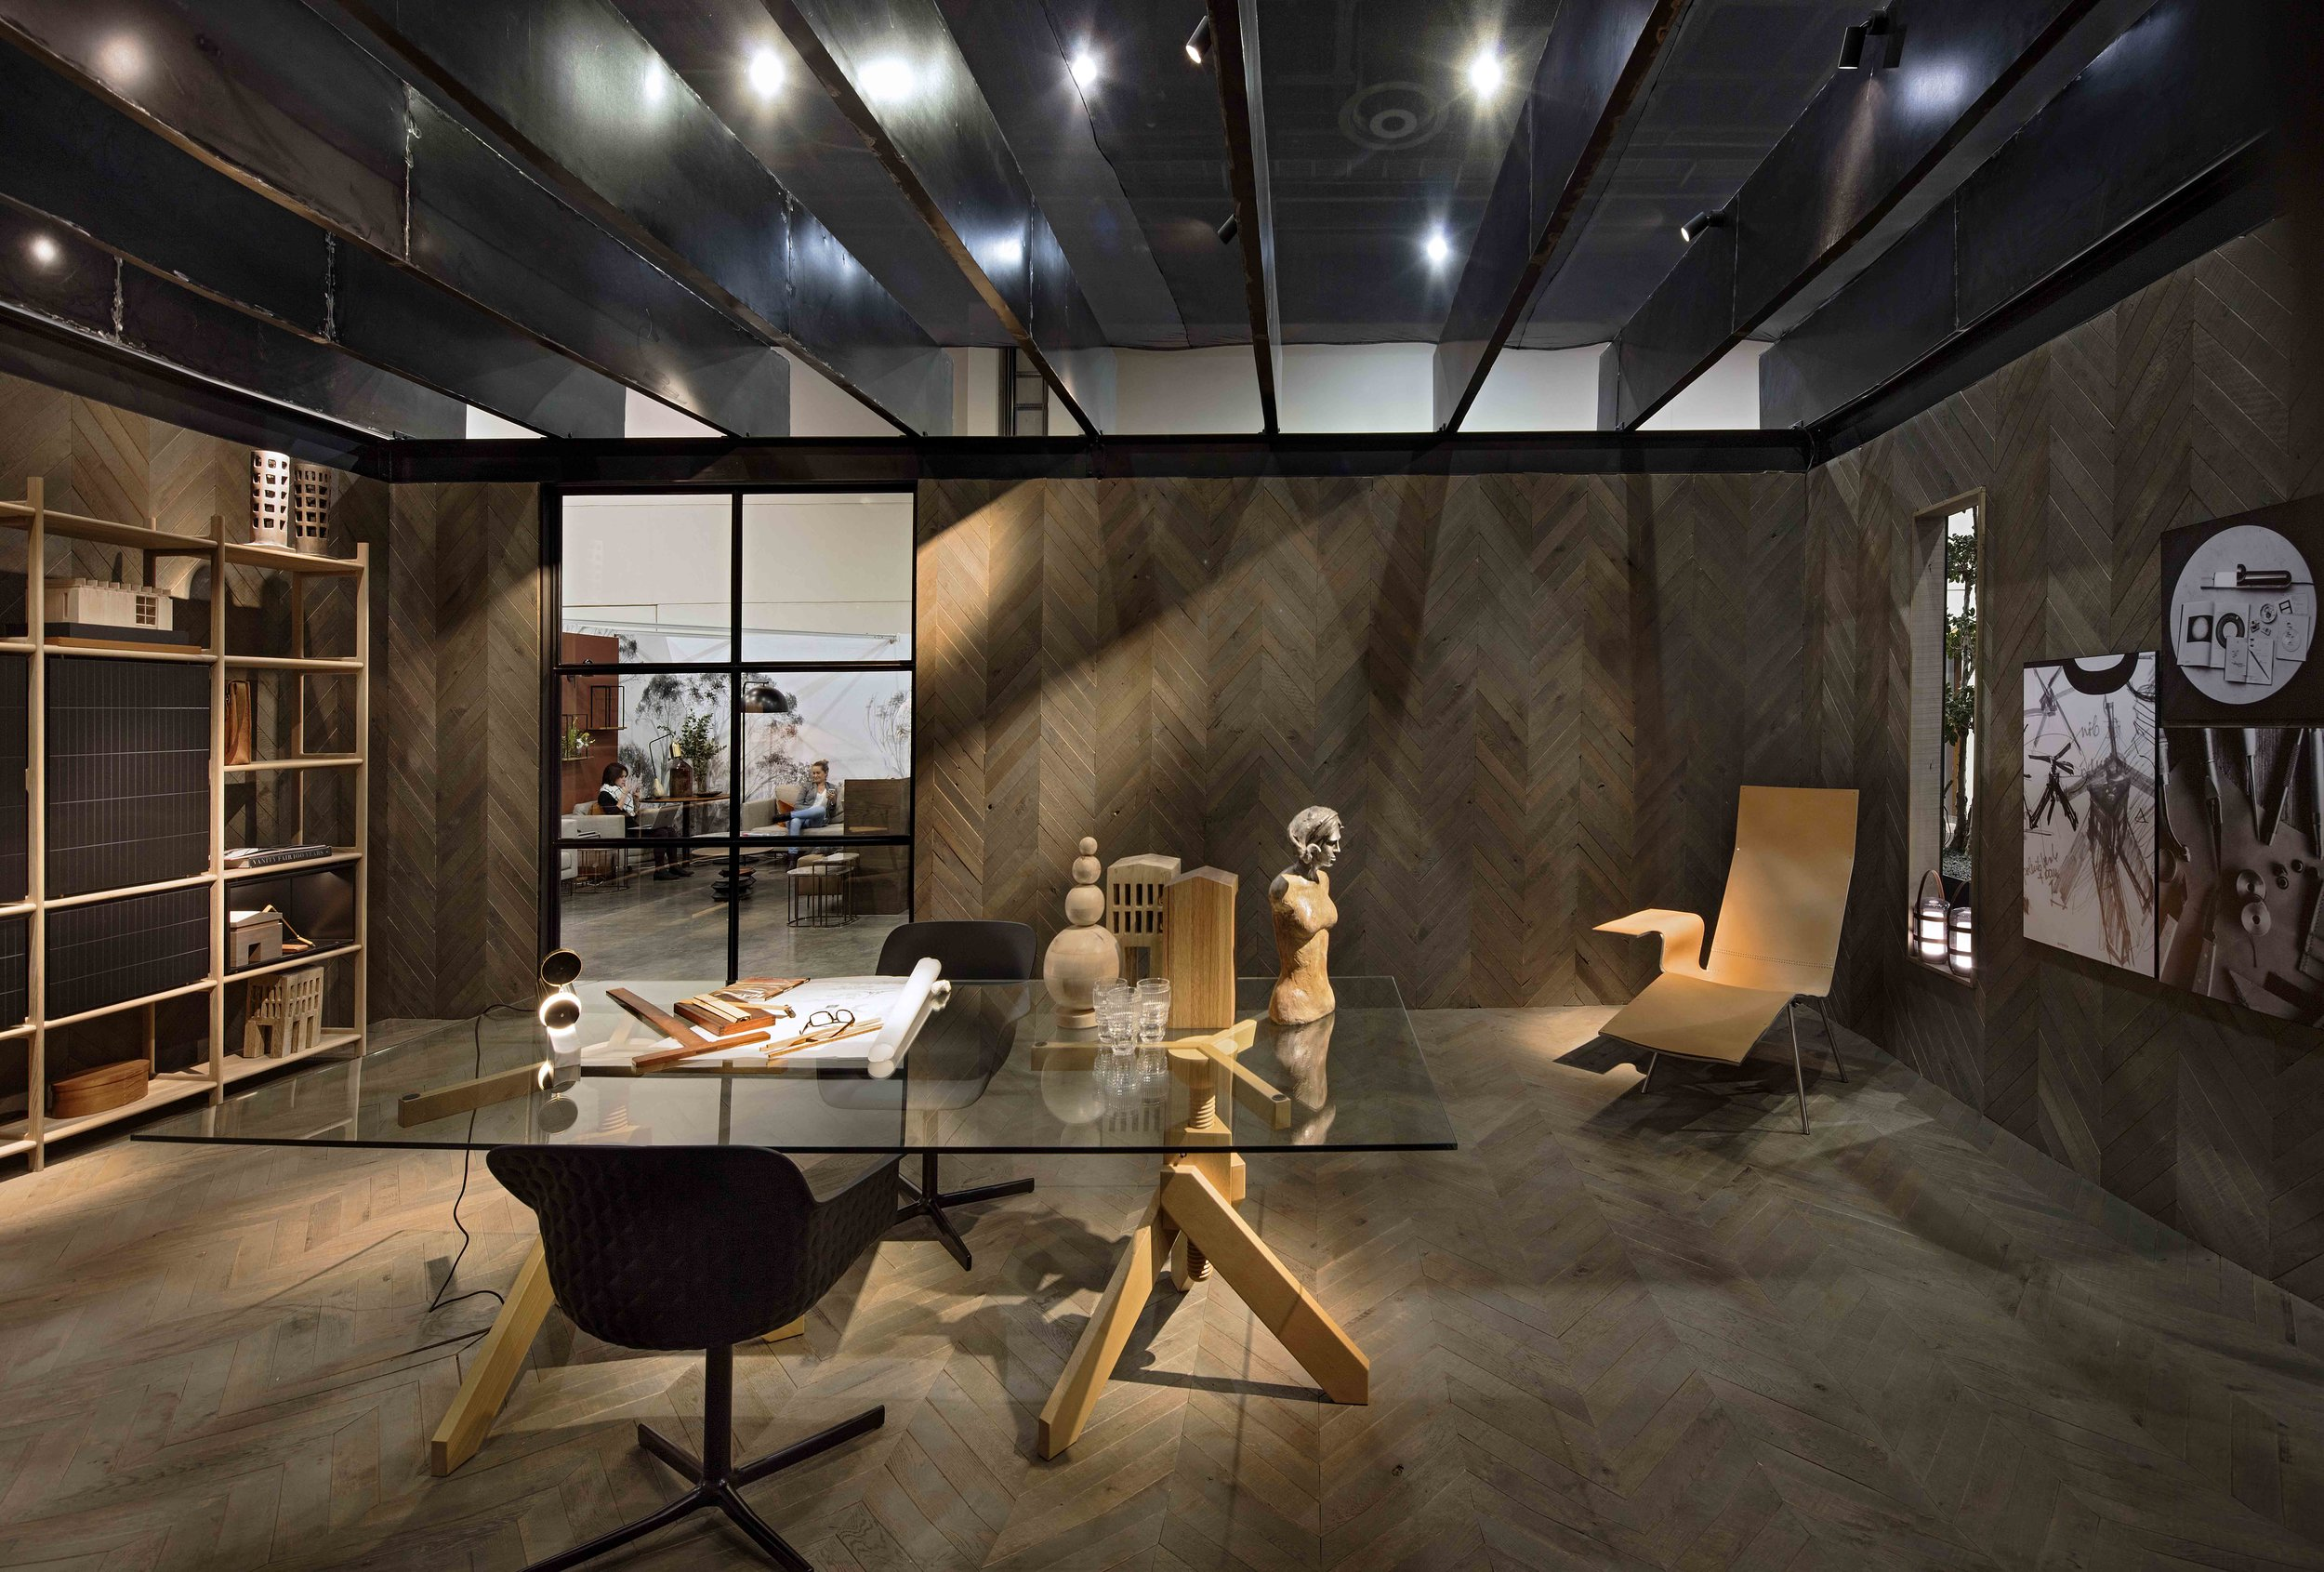 JVR Architects Rooms on View 14 05 2017_int 2 pan.jpg